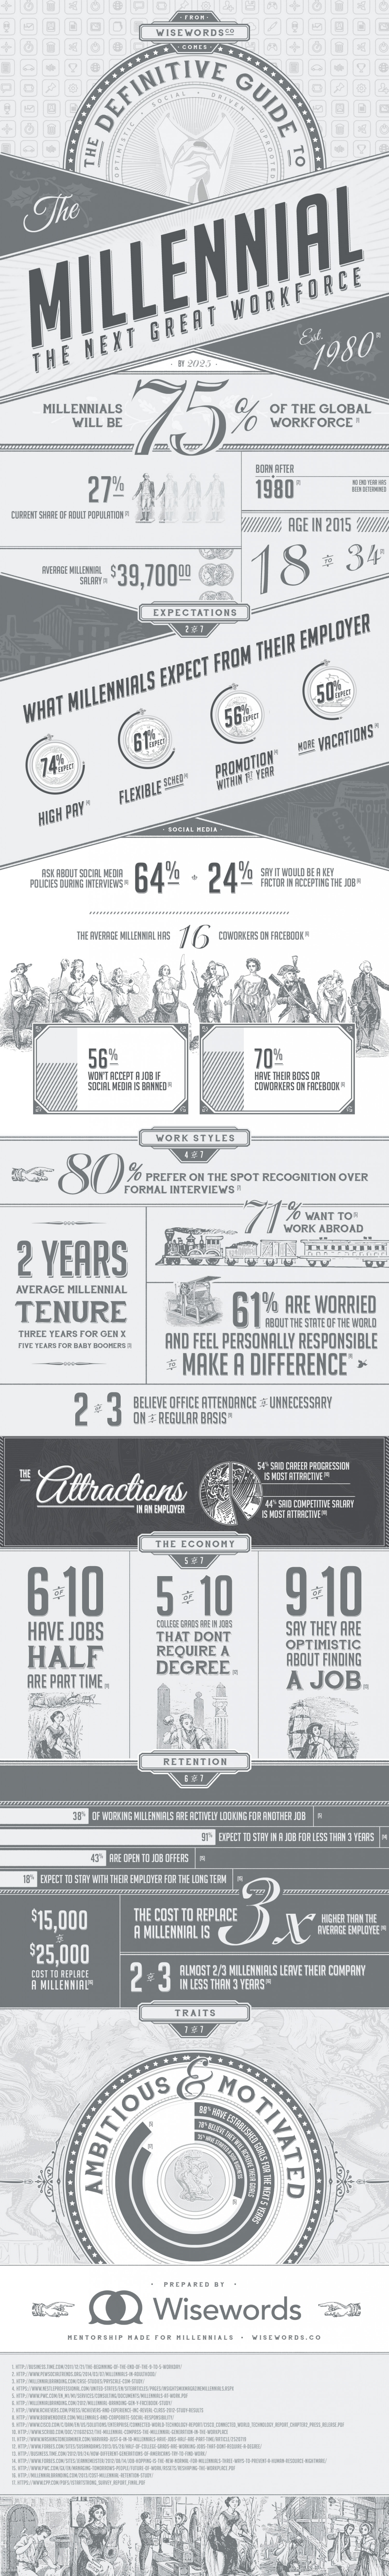 The Definitive Guide to the Millennial Workforce Infographic